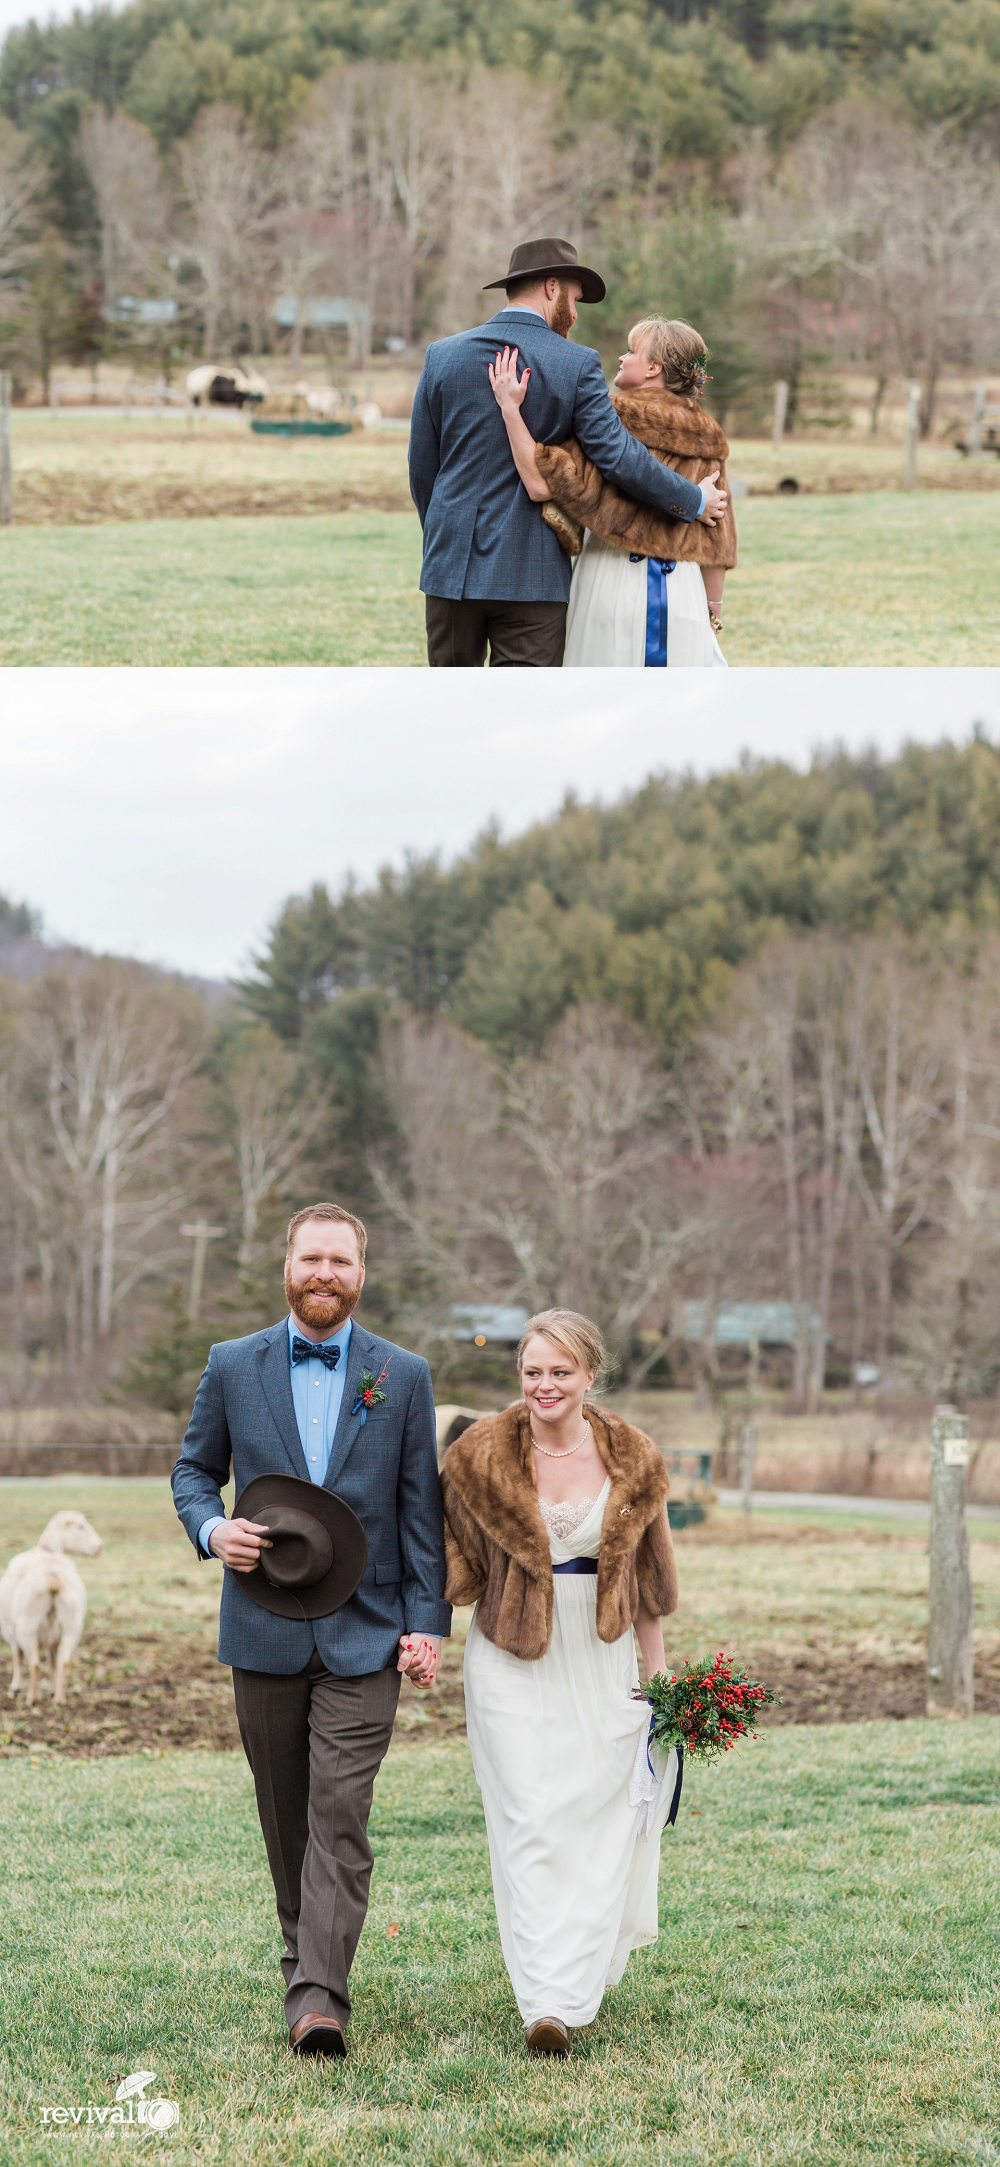 Photos by Revival Photography Vintage Inspired Winter Elopement on New Years Eve Mast Farm Inn www.revivalphotography.com